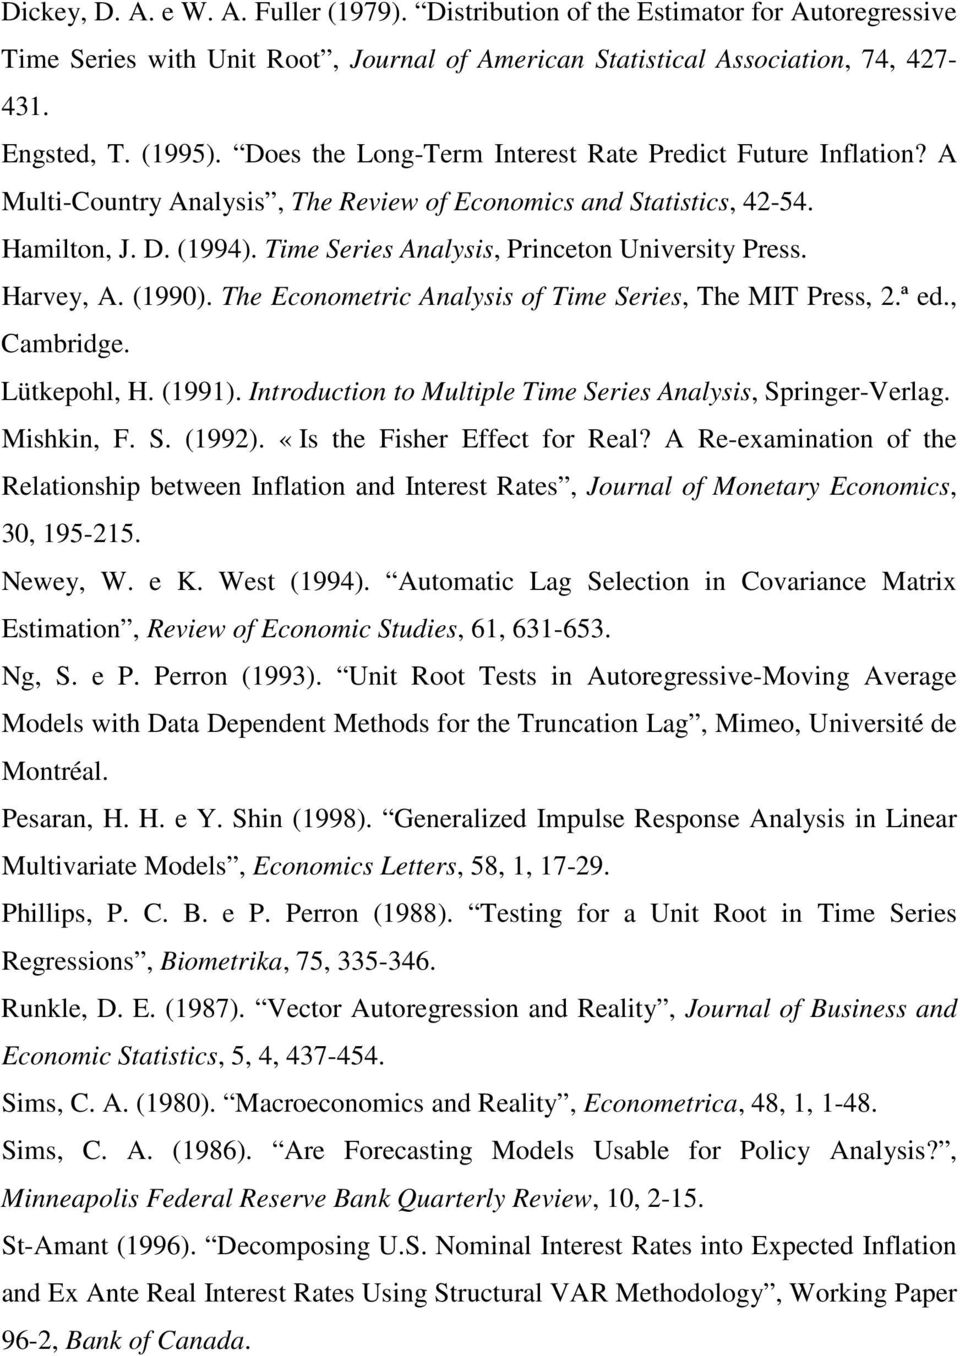 (990). The Economeric Analysis of Time Series, The MIT Press,.ª ed., Cambridge. Lükeohl, H. (99). Inroducion o Mulile Time Series Analysis, Sringer-Verlag. Mishkin, F. S. (99). «Is he Fisher Effec for Real?